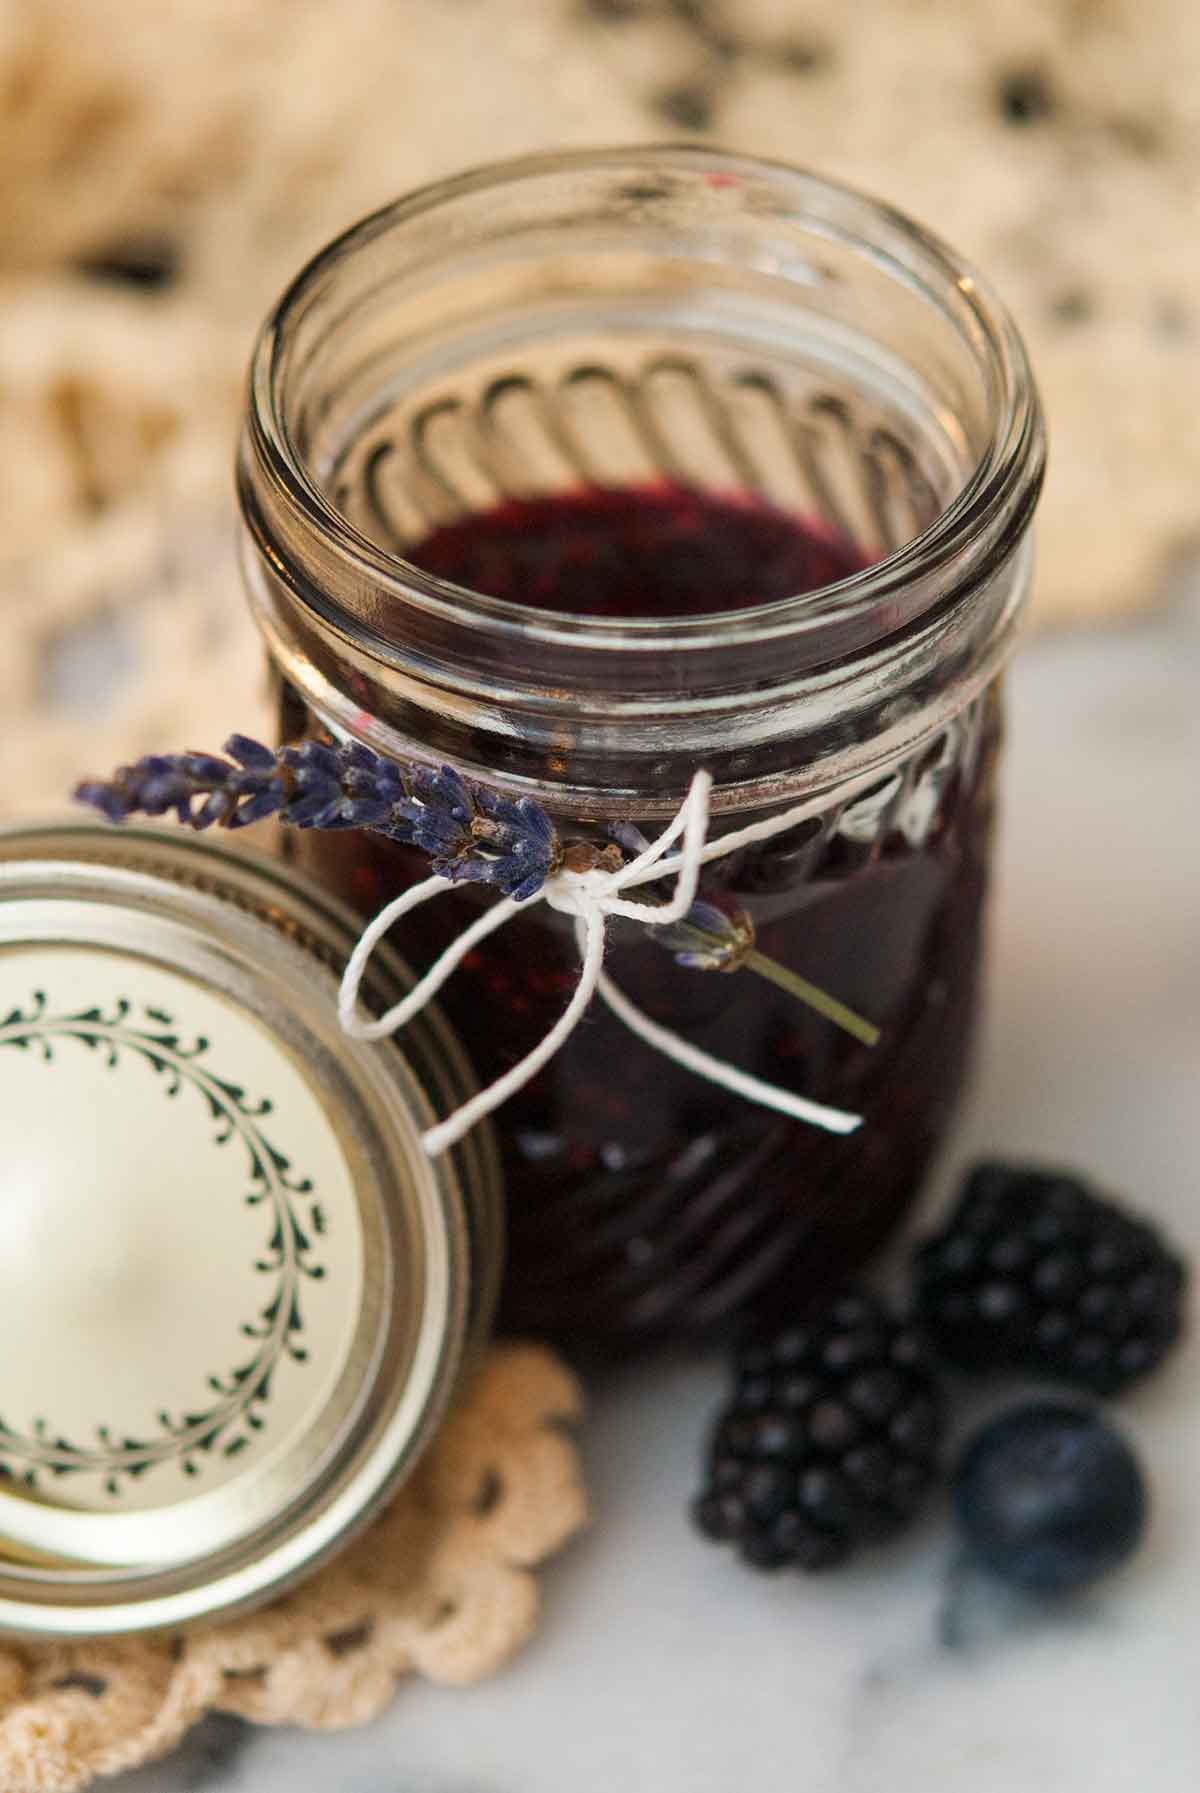 A jar of jam tied with a string with a sprig of lavender tucked into the string with a lace table cloth in the background.